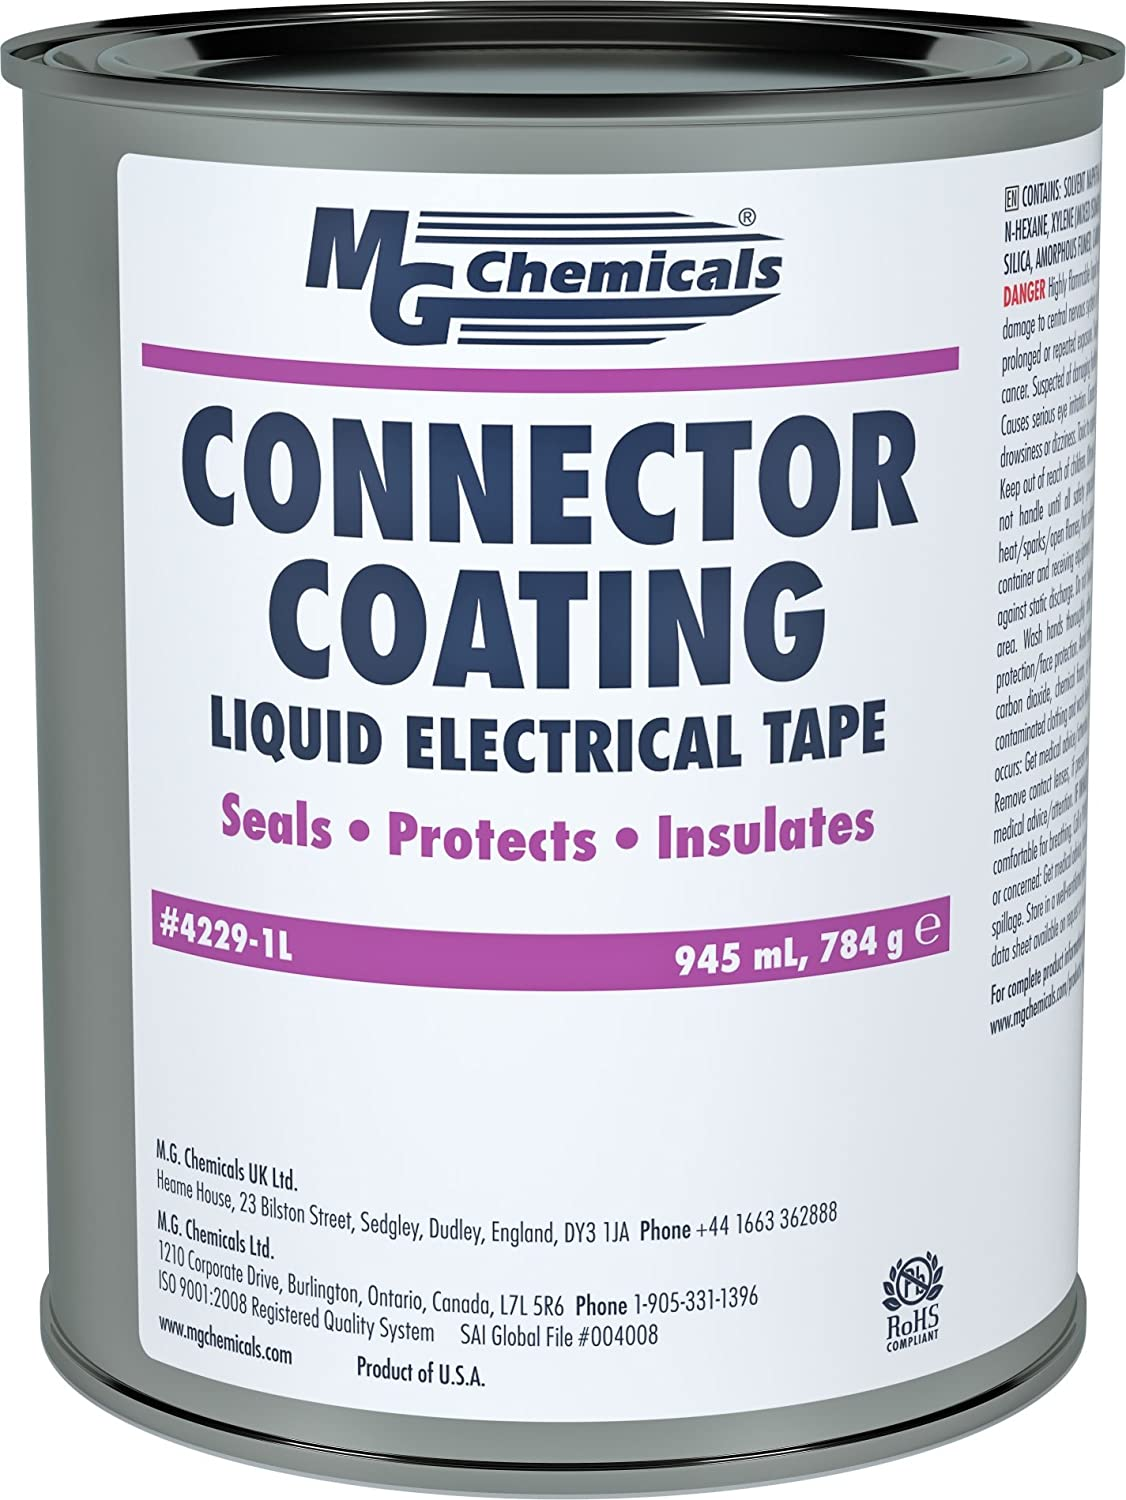 MG Chemicals Connector Coating, 1 Quart Can, Black